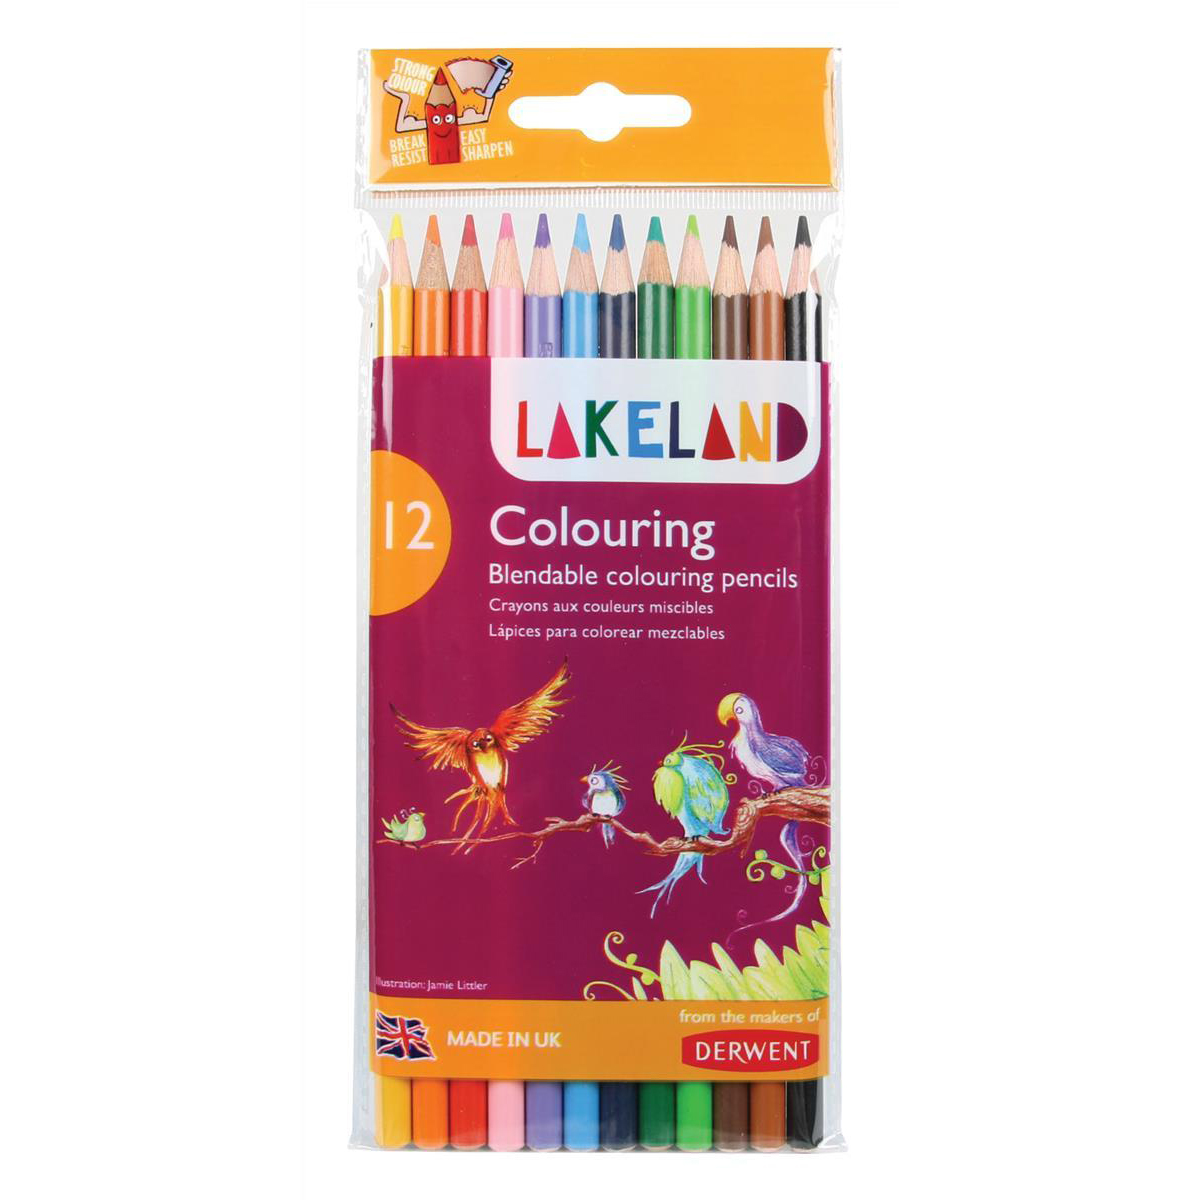 Colouring / Drawing Pencils Lakeland Colouring Pencils Round-barrelled Soft Blendable Wallet Assorted Ref 33356 Pack 12